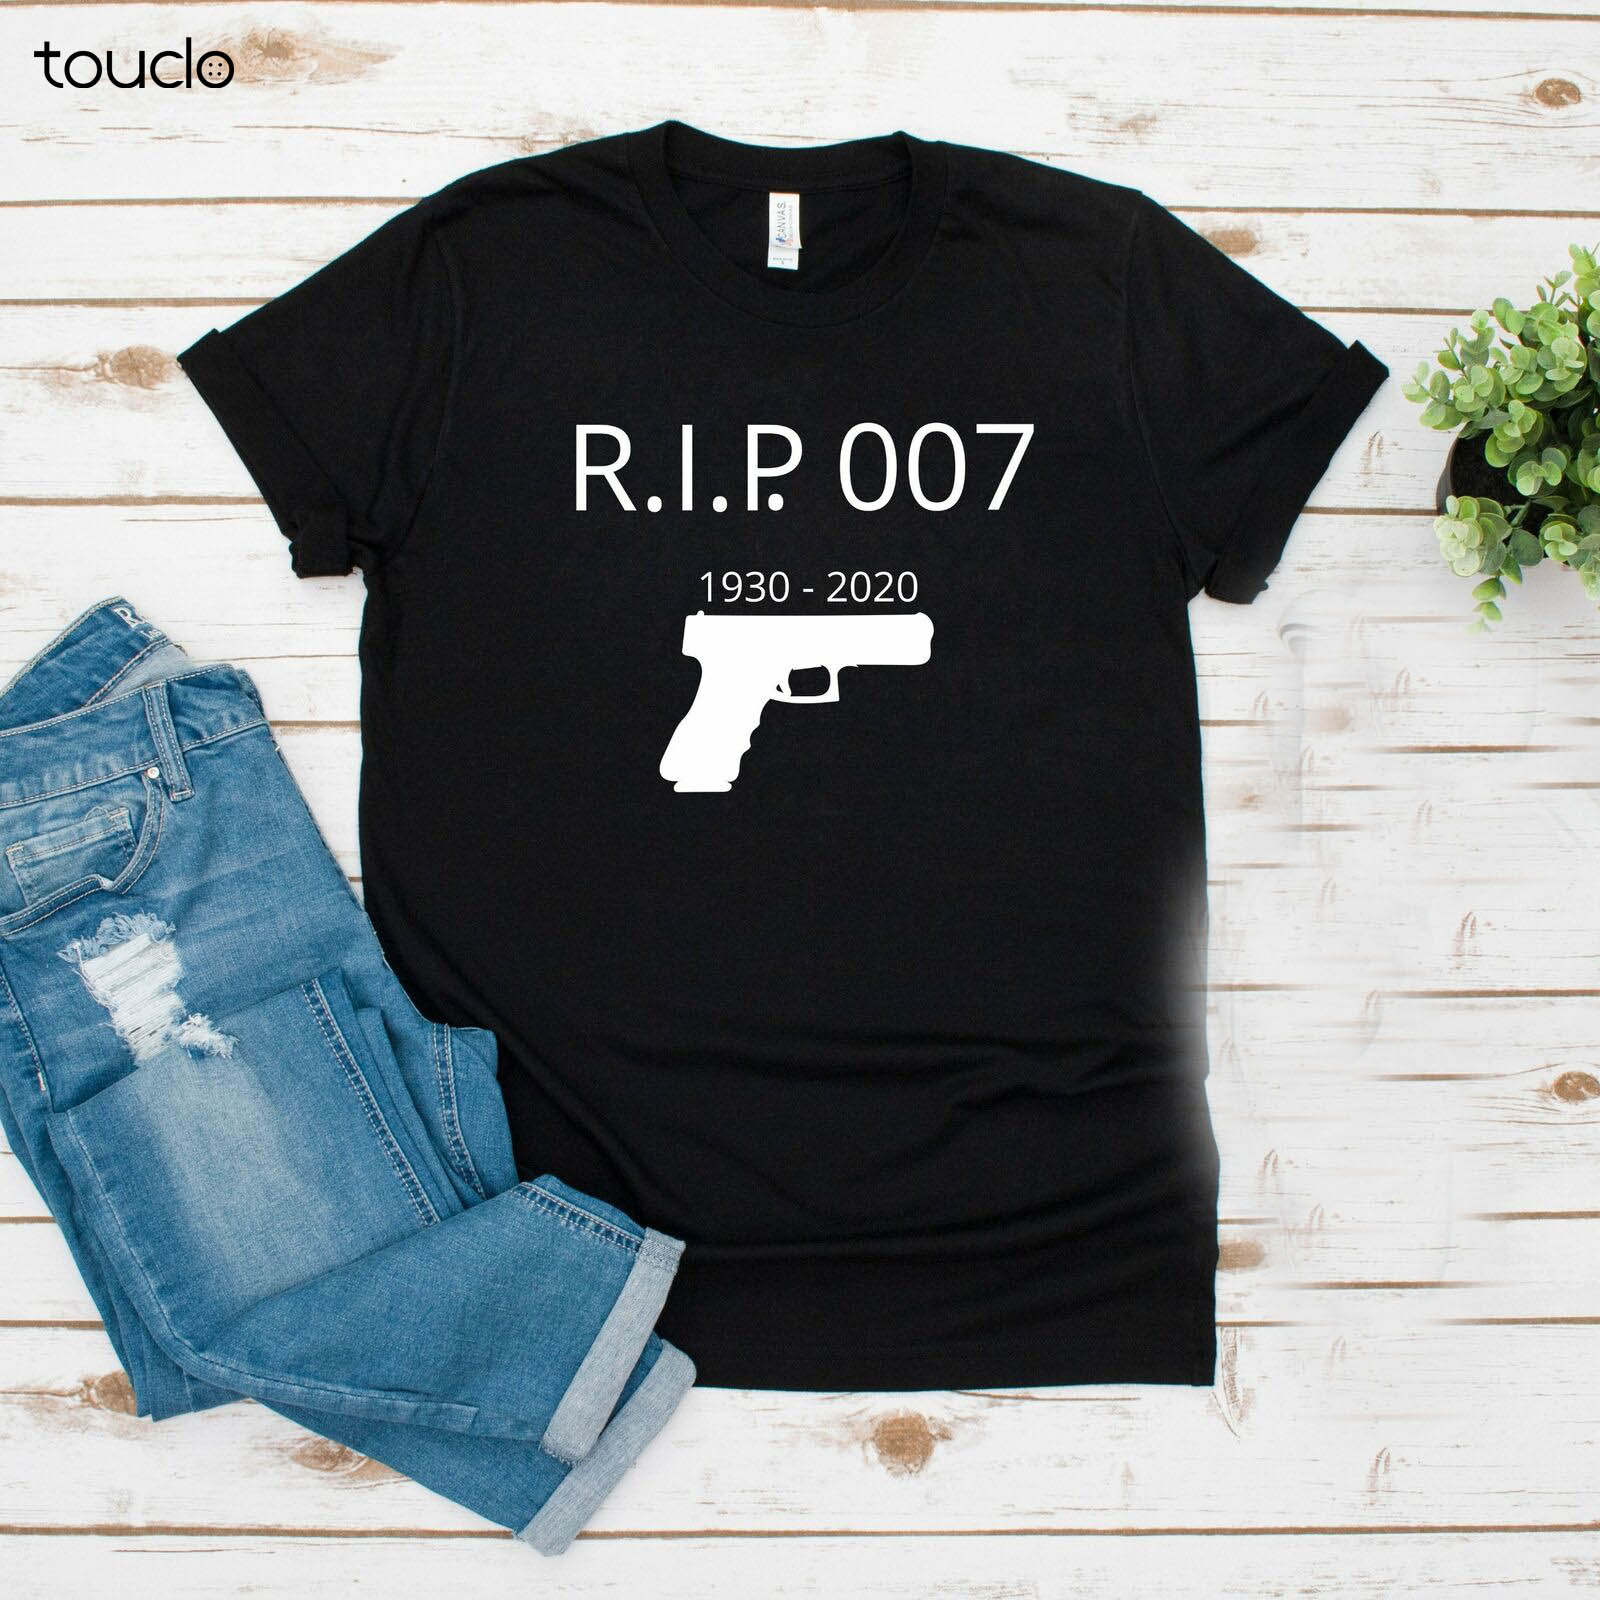 New Rip Sean Connery James Bond 007 Years Of Thank You For The Memories Black Shirt Unisex S-5Xl